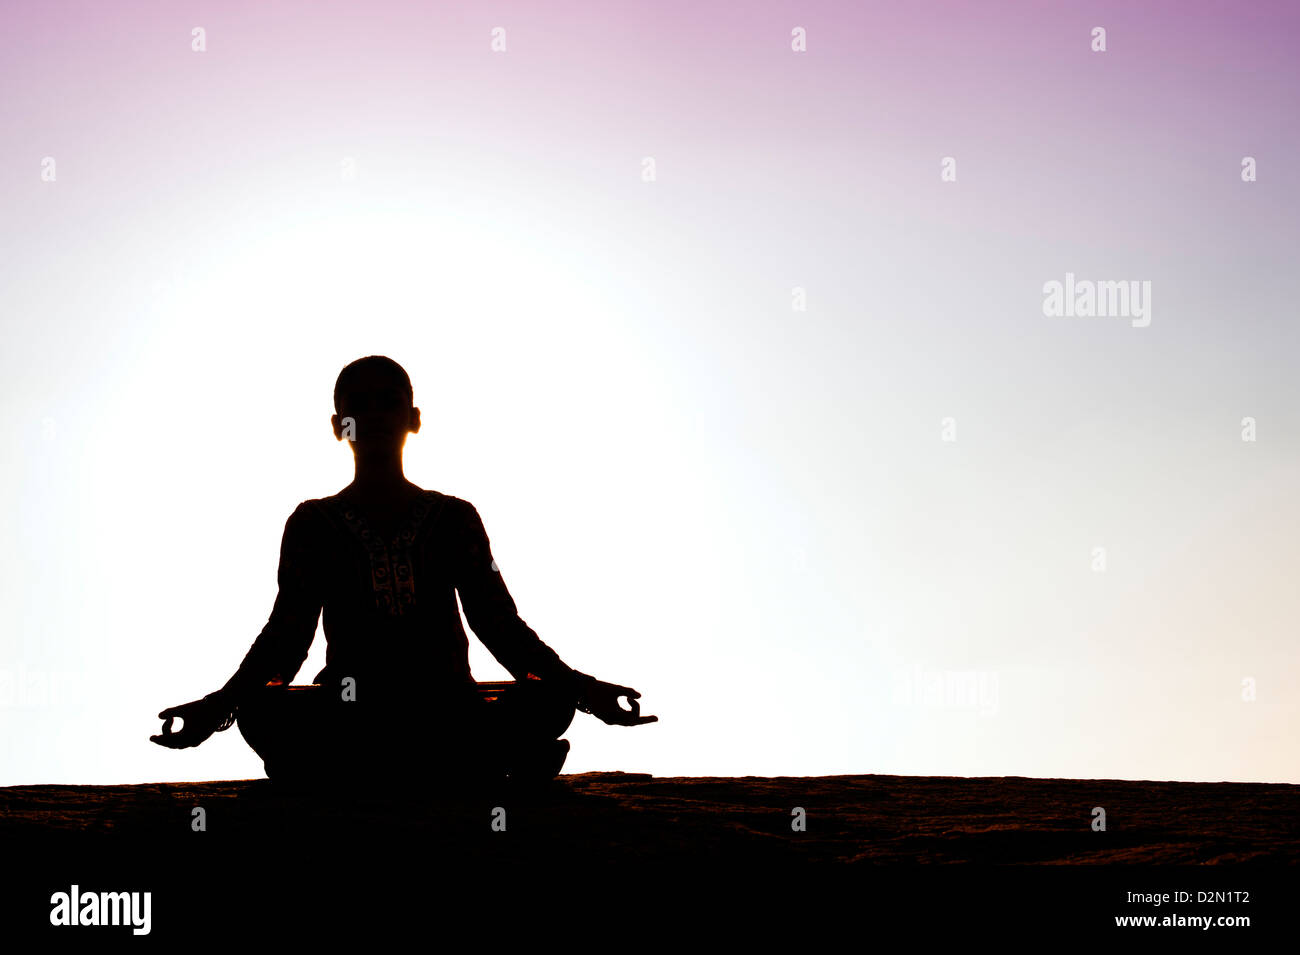 Silhouette of an Indian girl meditating. Andhra Pradesh, India - Stock Image